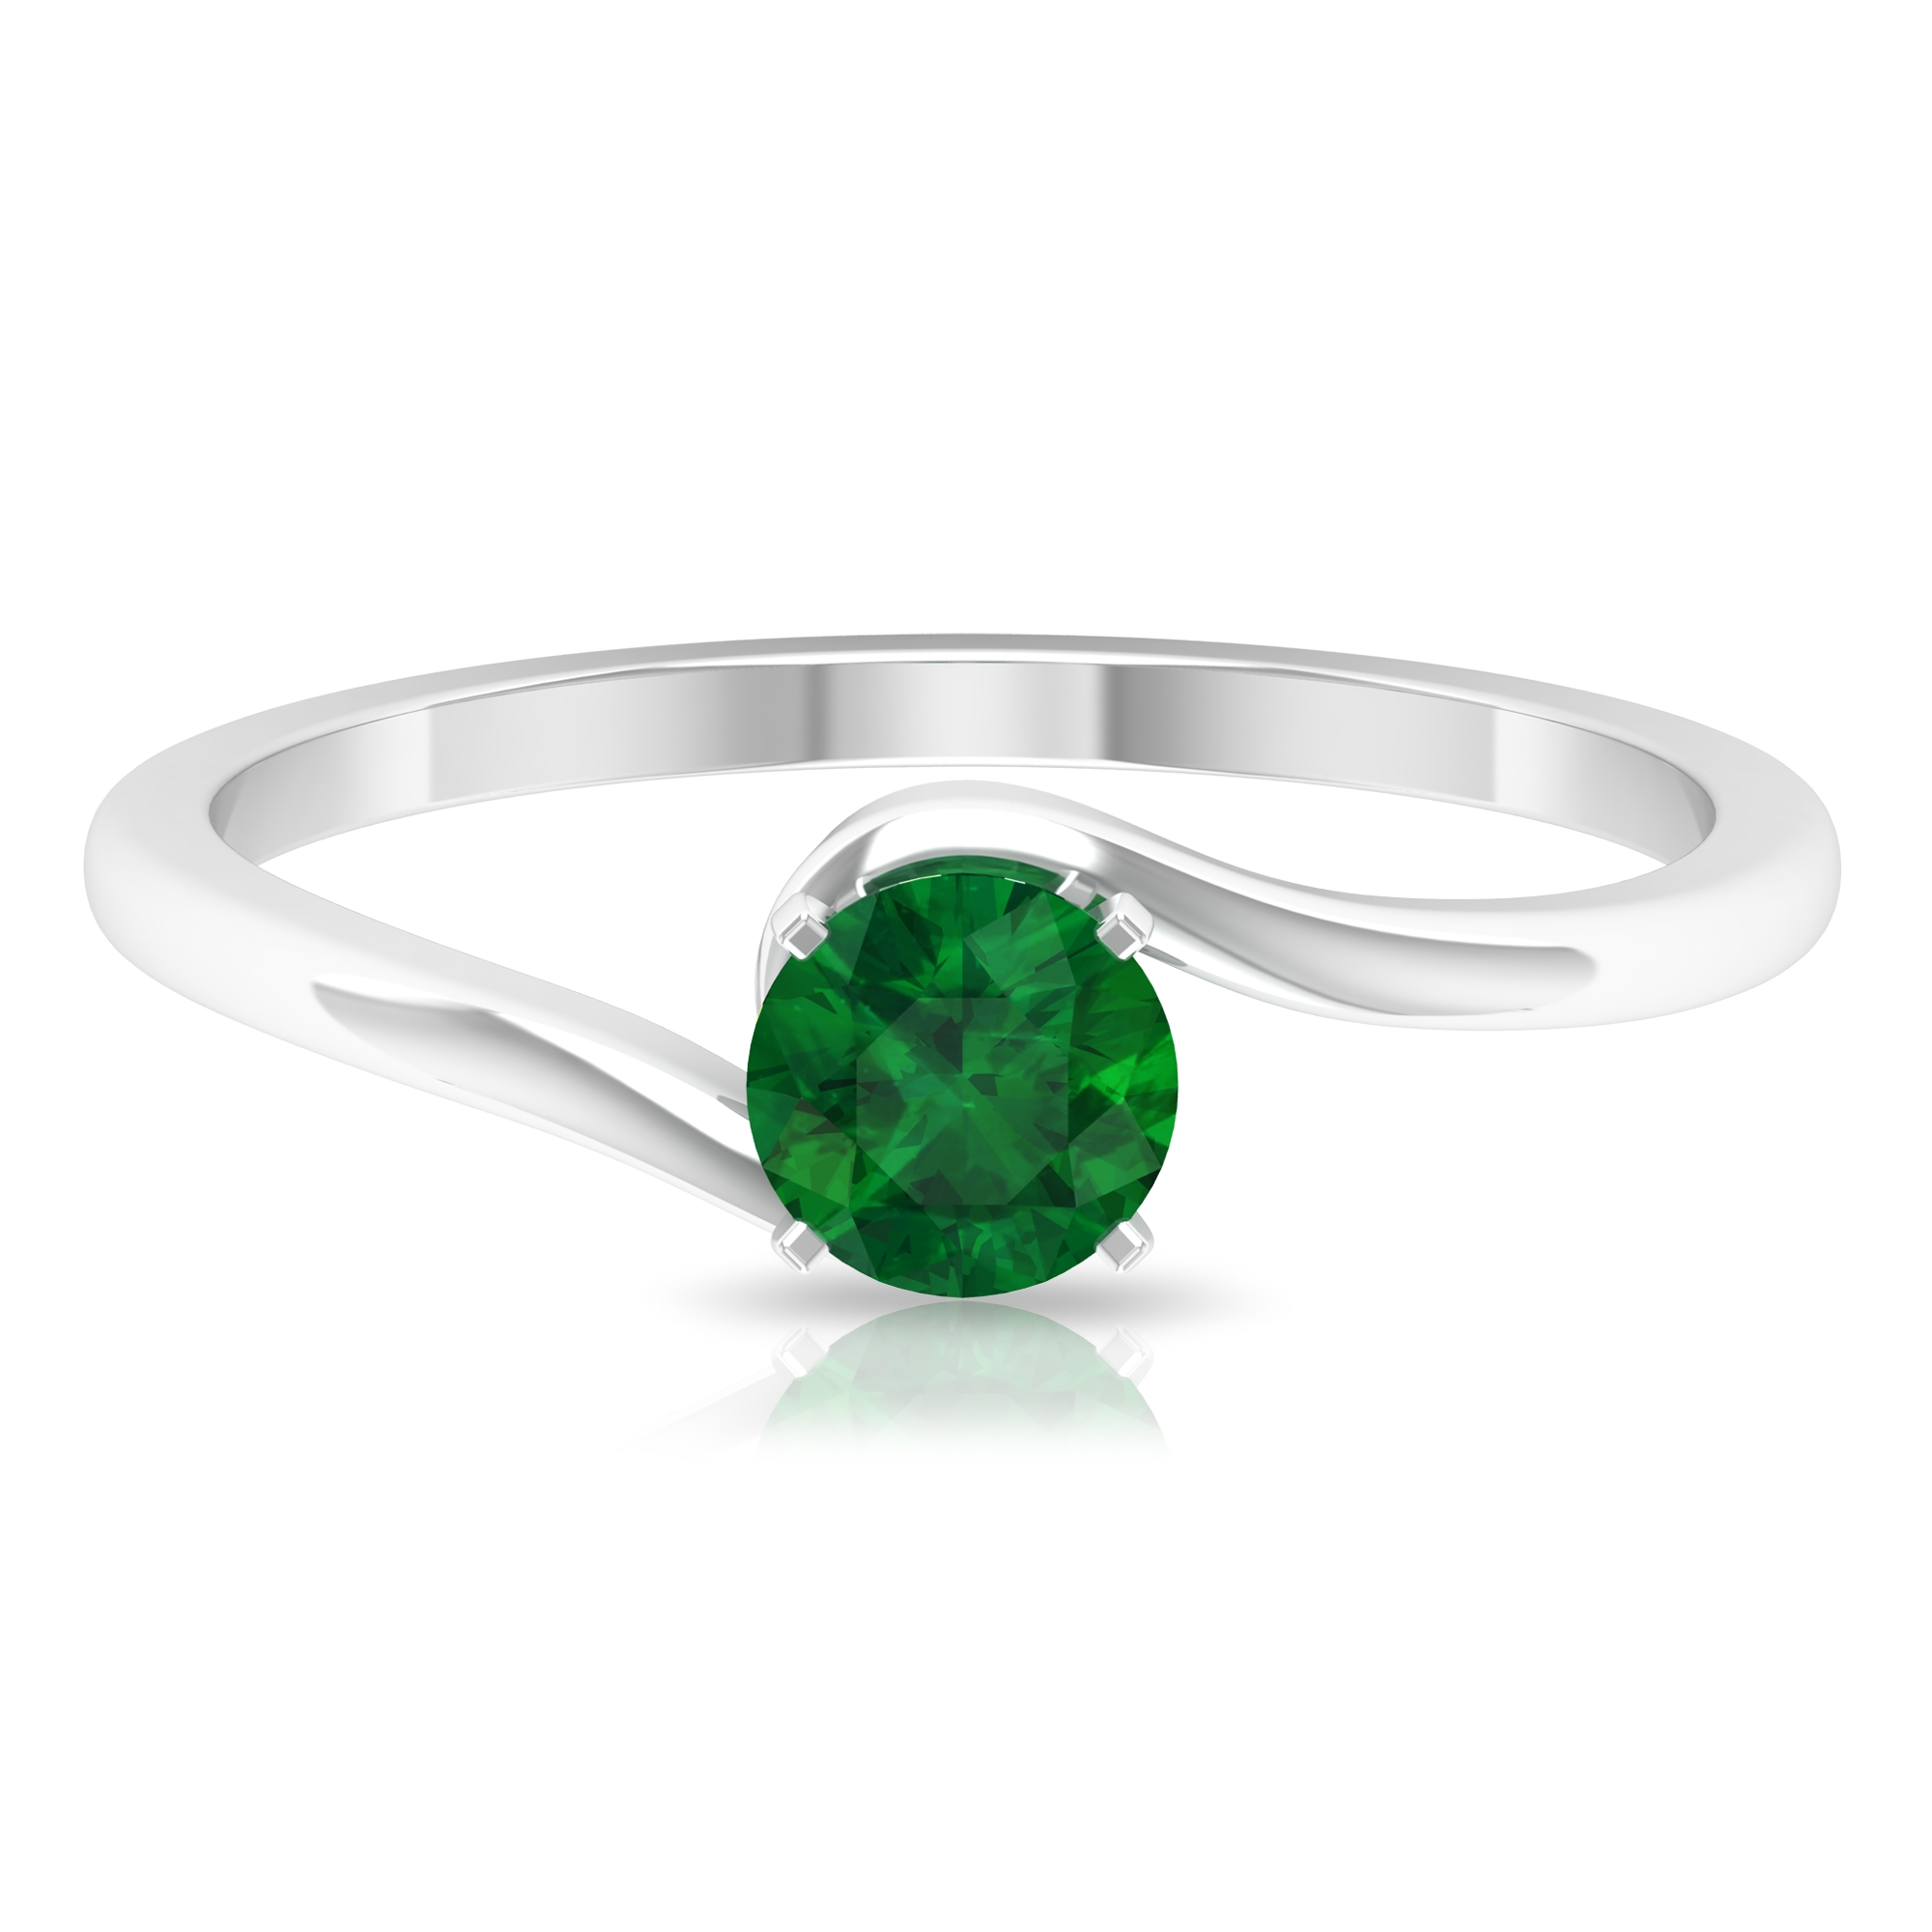 May Birthstone 5 MM Emerald Solitaire Ring in Square Prong Setting with Bypass Shank